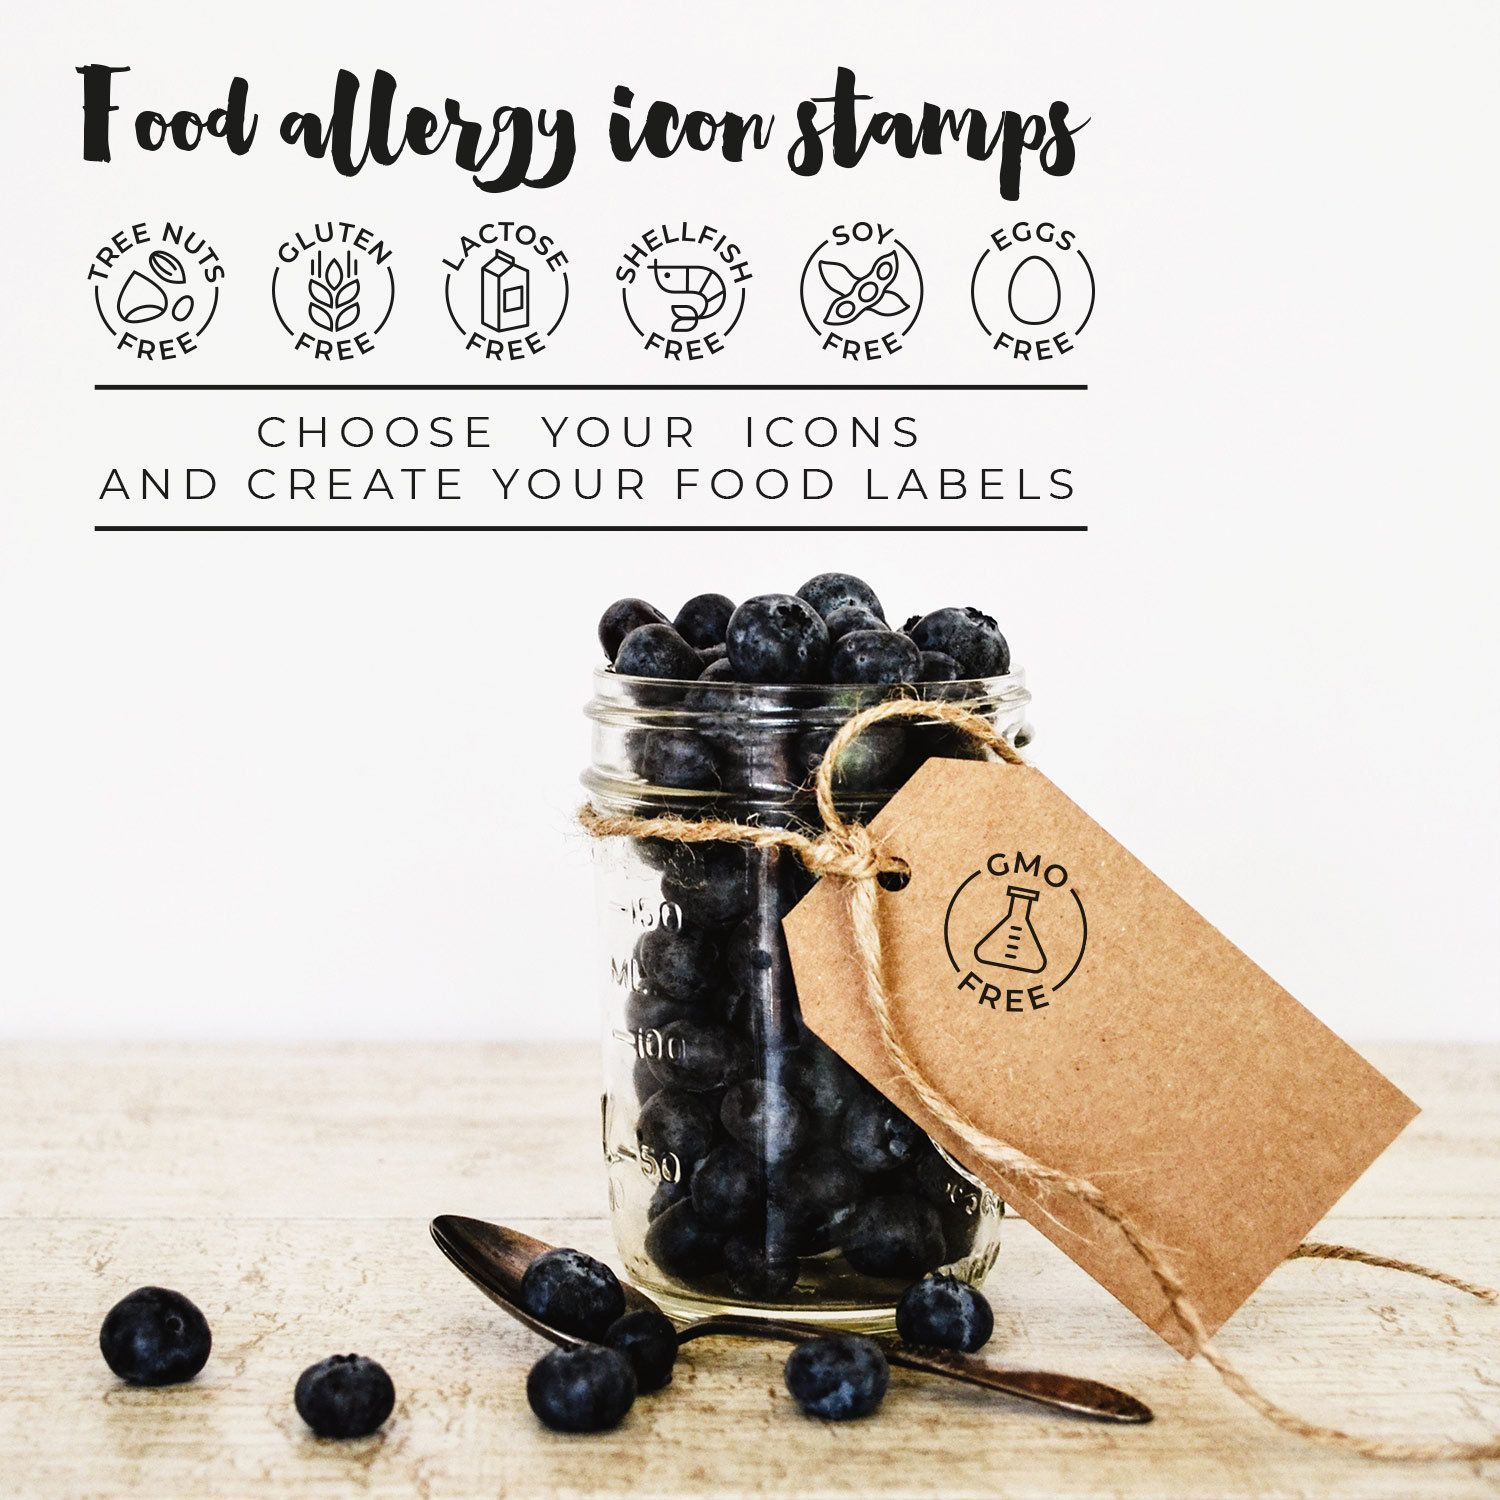 Food allergy stamps, food allergy labels, food allergy